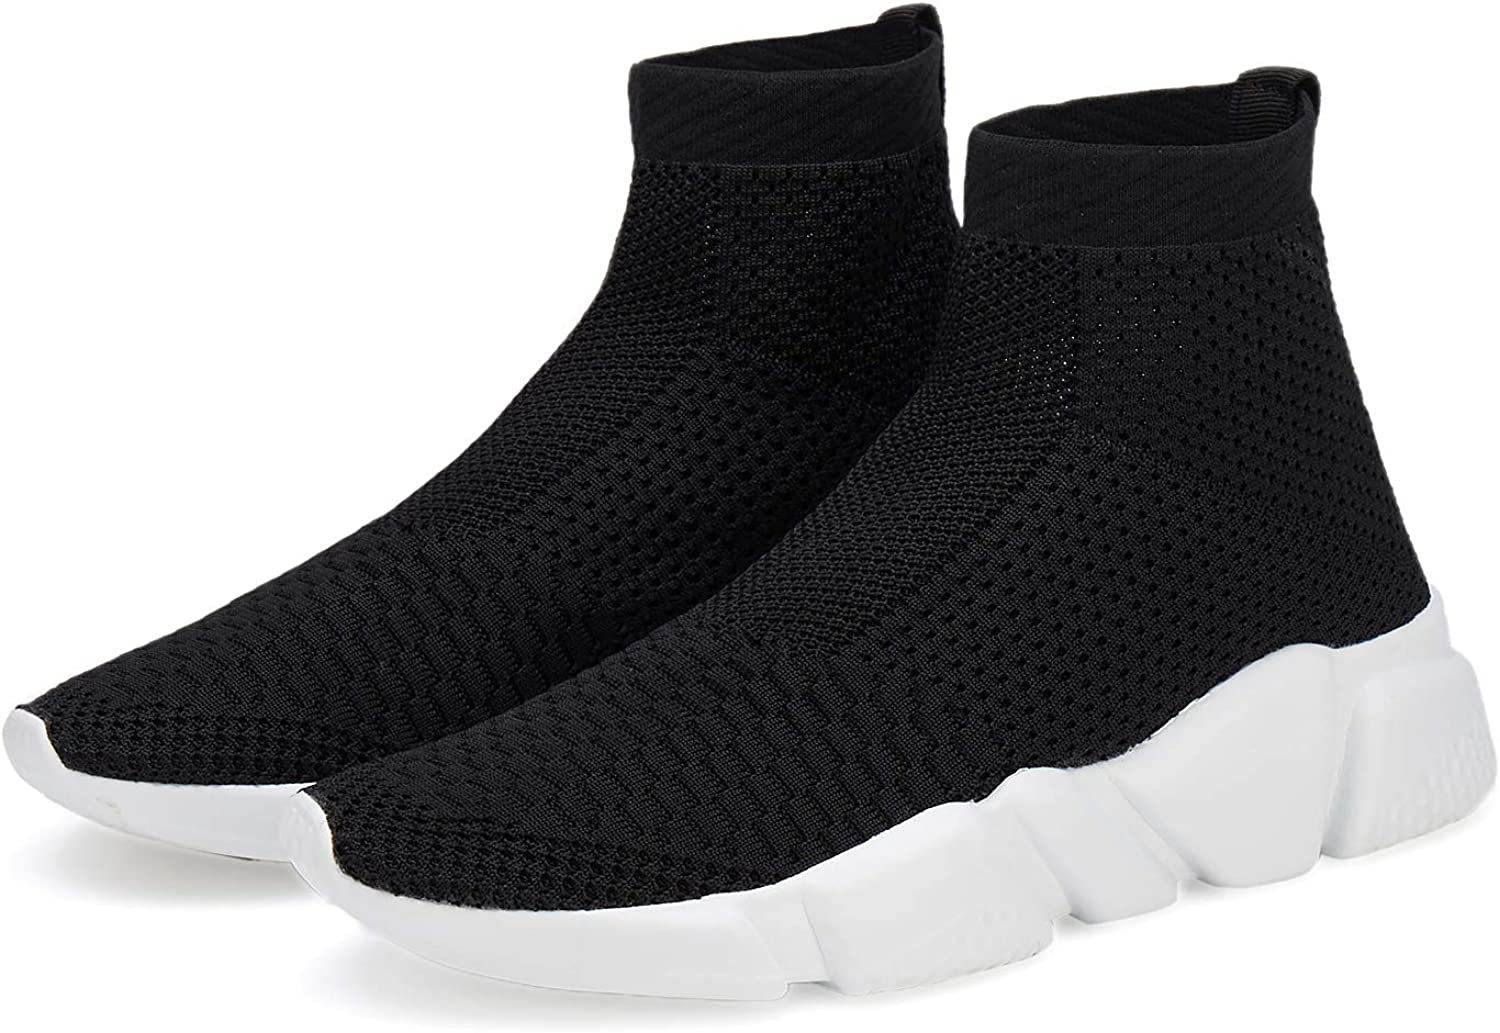 Santiro Mens Running Shoes Breathable Knit Slip On Sneakers Lightweight Athletic Shoes Casual Sports Shoes